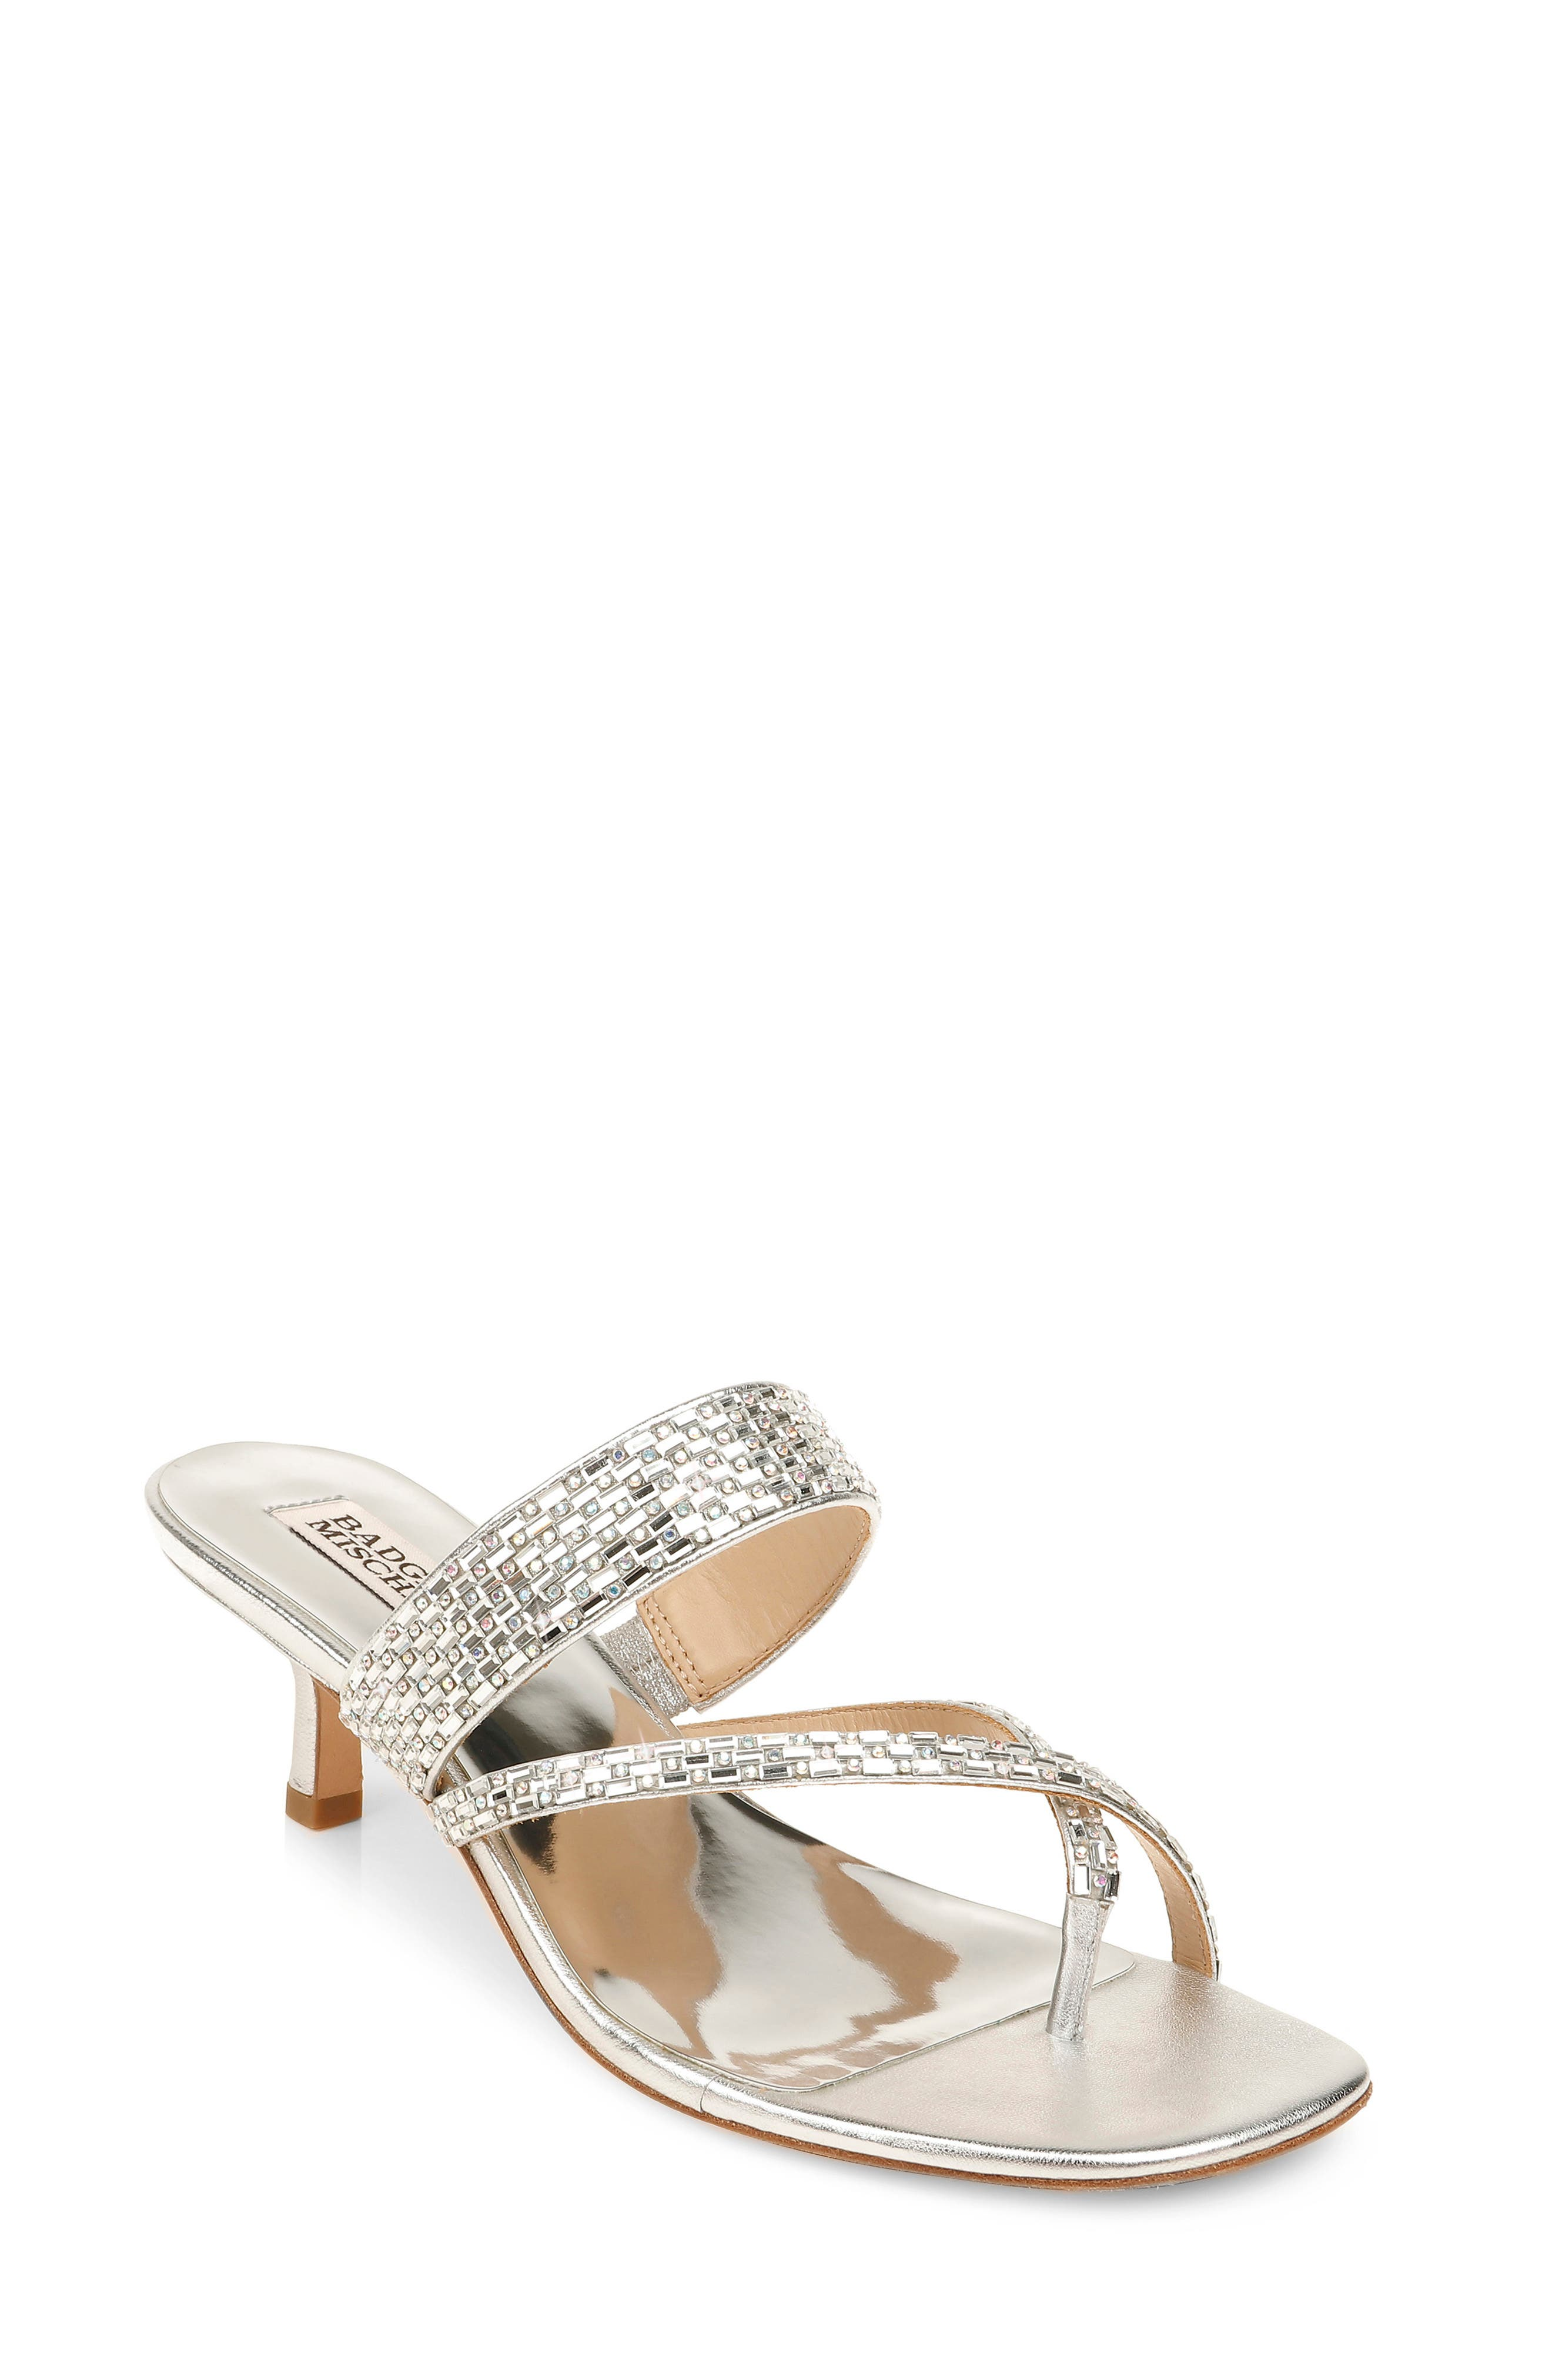 Sparkling crystals dazzle the straps of an asymmetrical sandal lifted by a tapered kitten heel. Style Name: Badgley Mischka Zena Embellished Slide Sandal (Women). Style Number: 6020304 1. Available in stores.